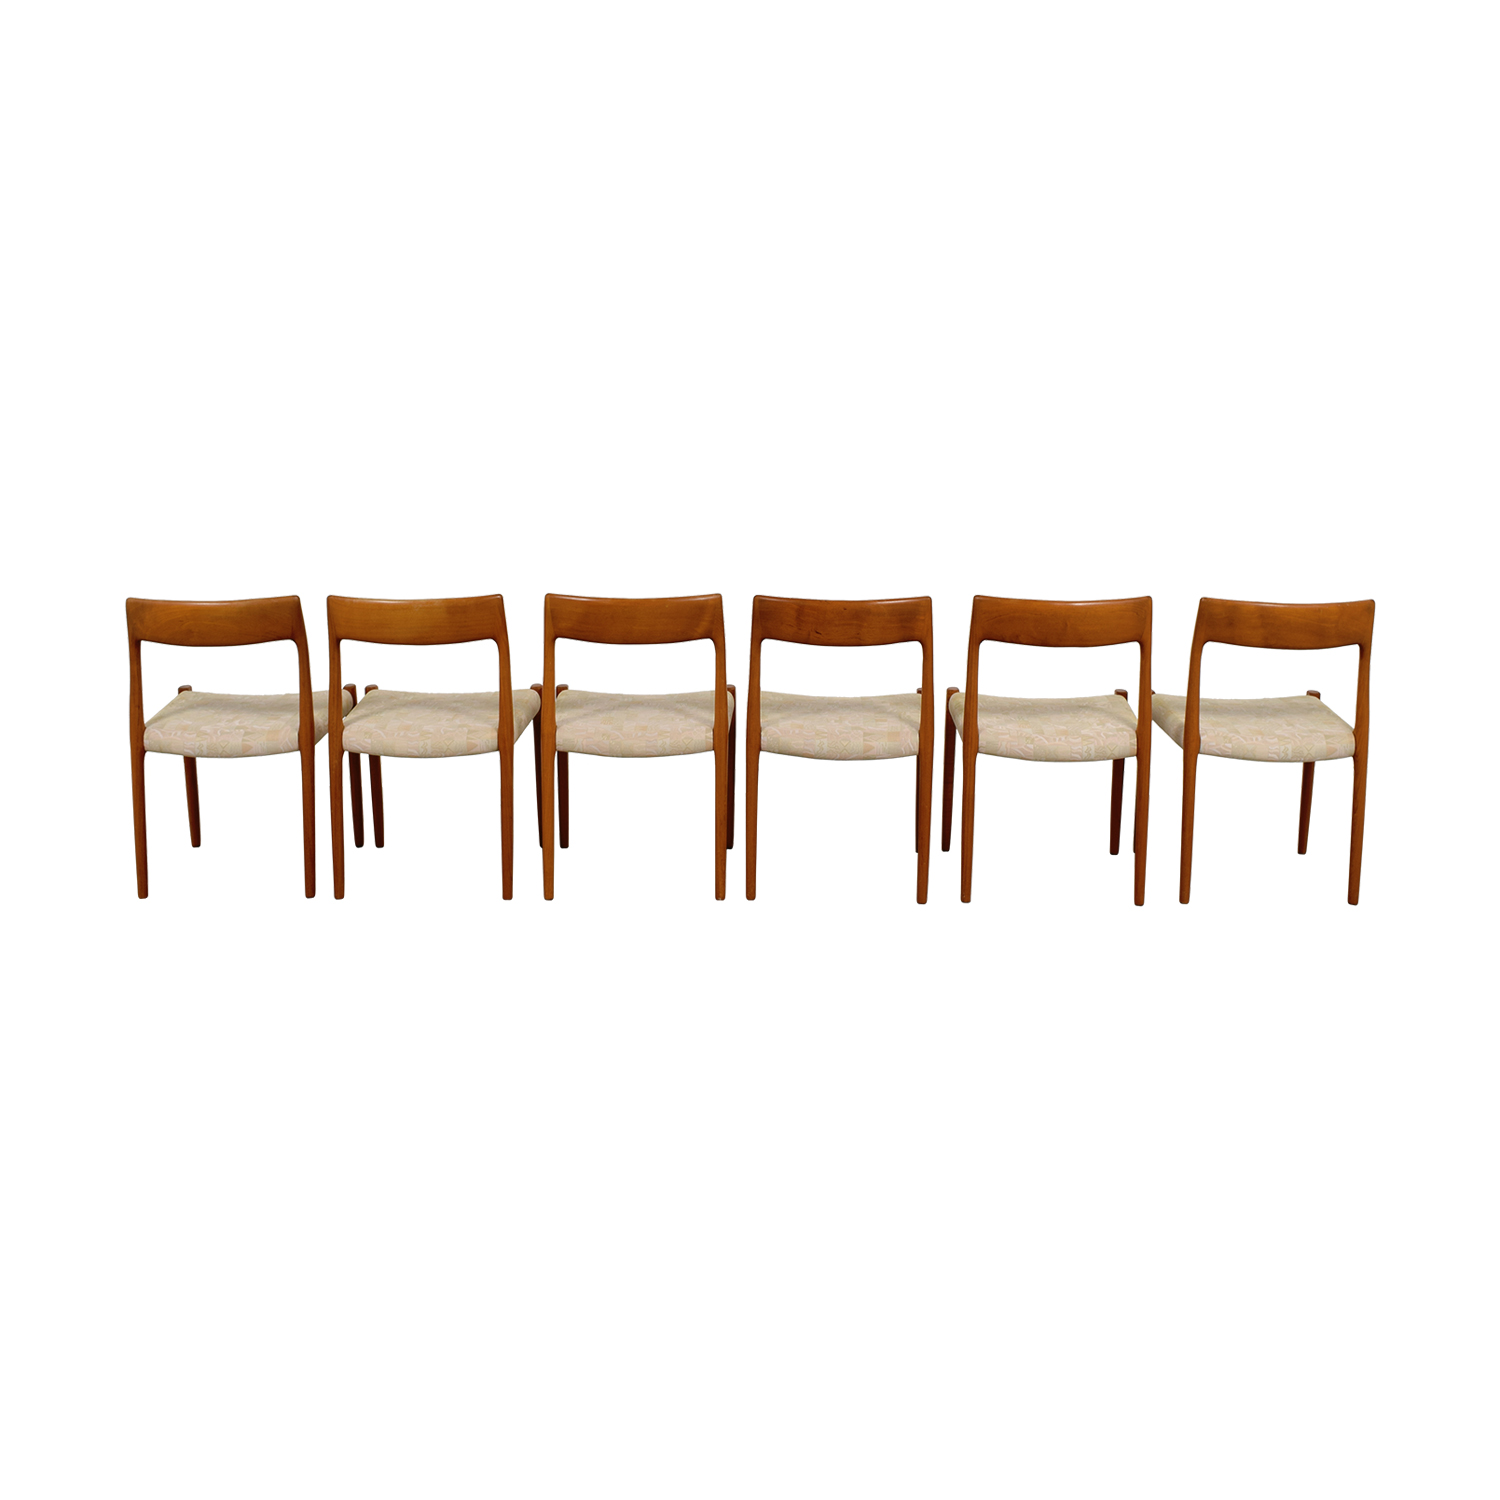 Skandinavian Furniture Skandinavian Furniture Wood Upholstered Dining Chairs beige